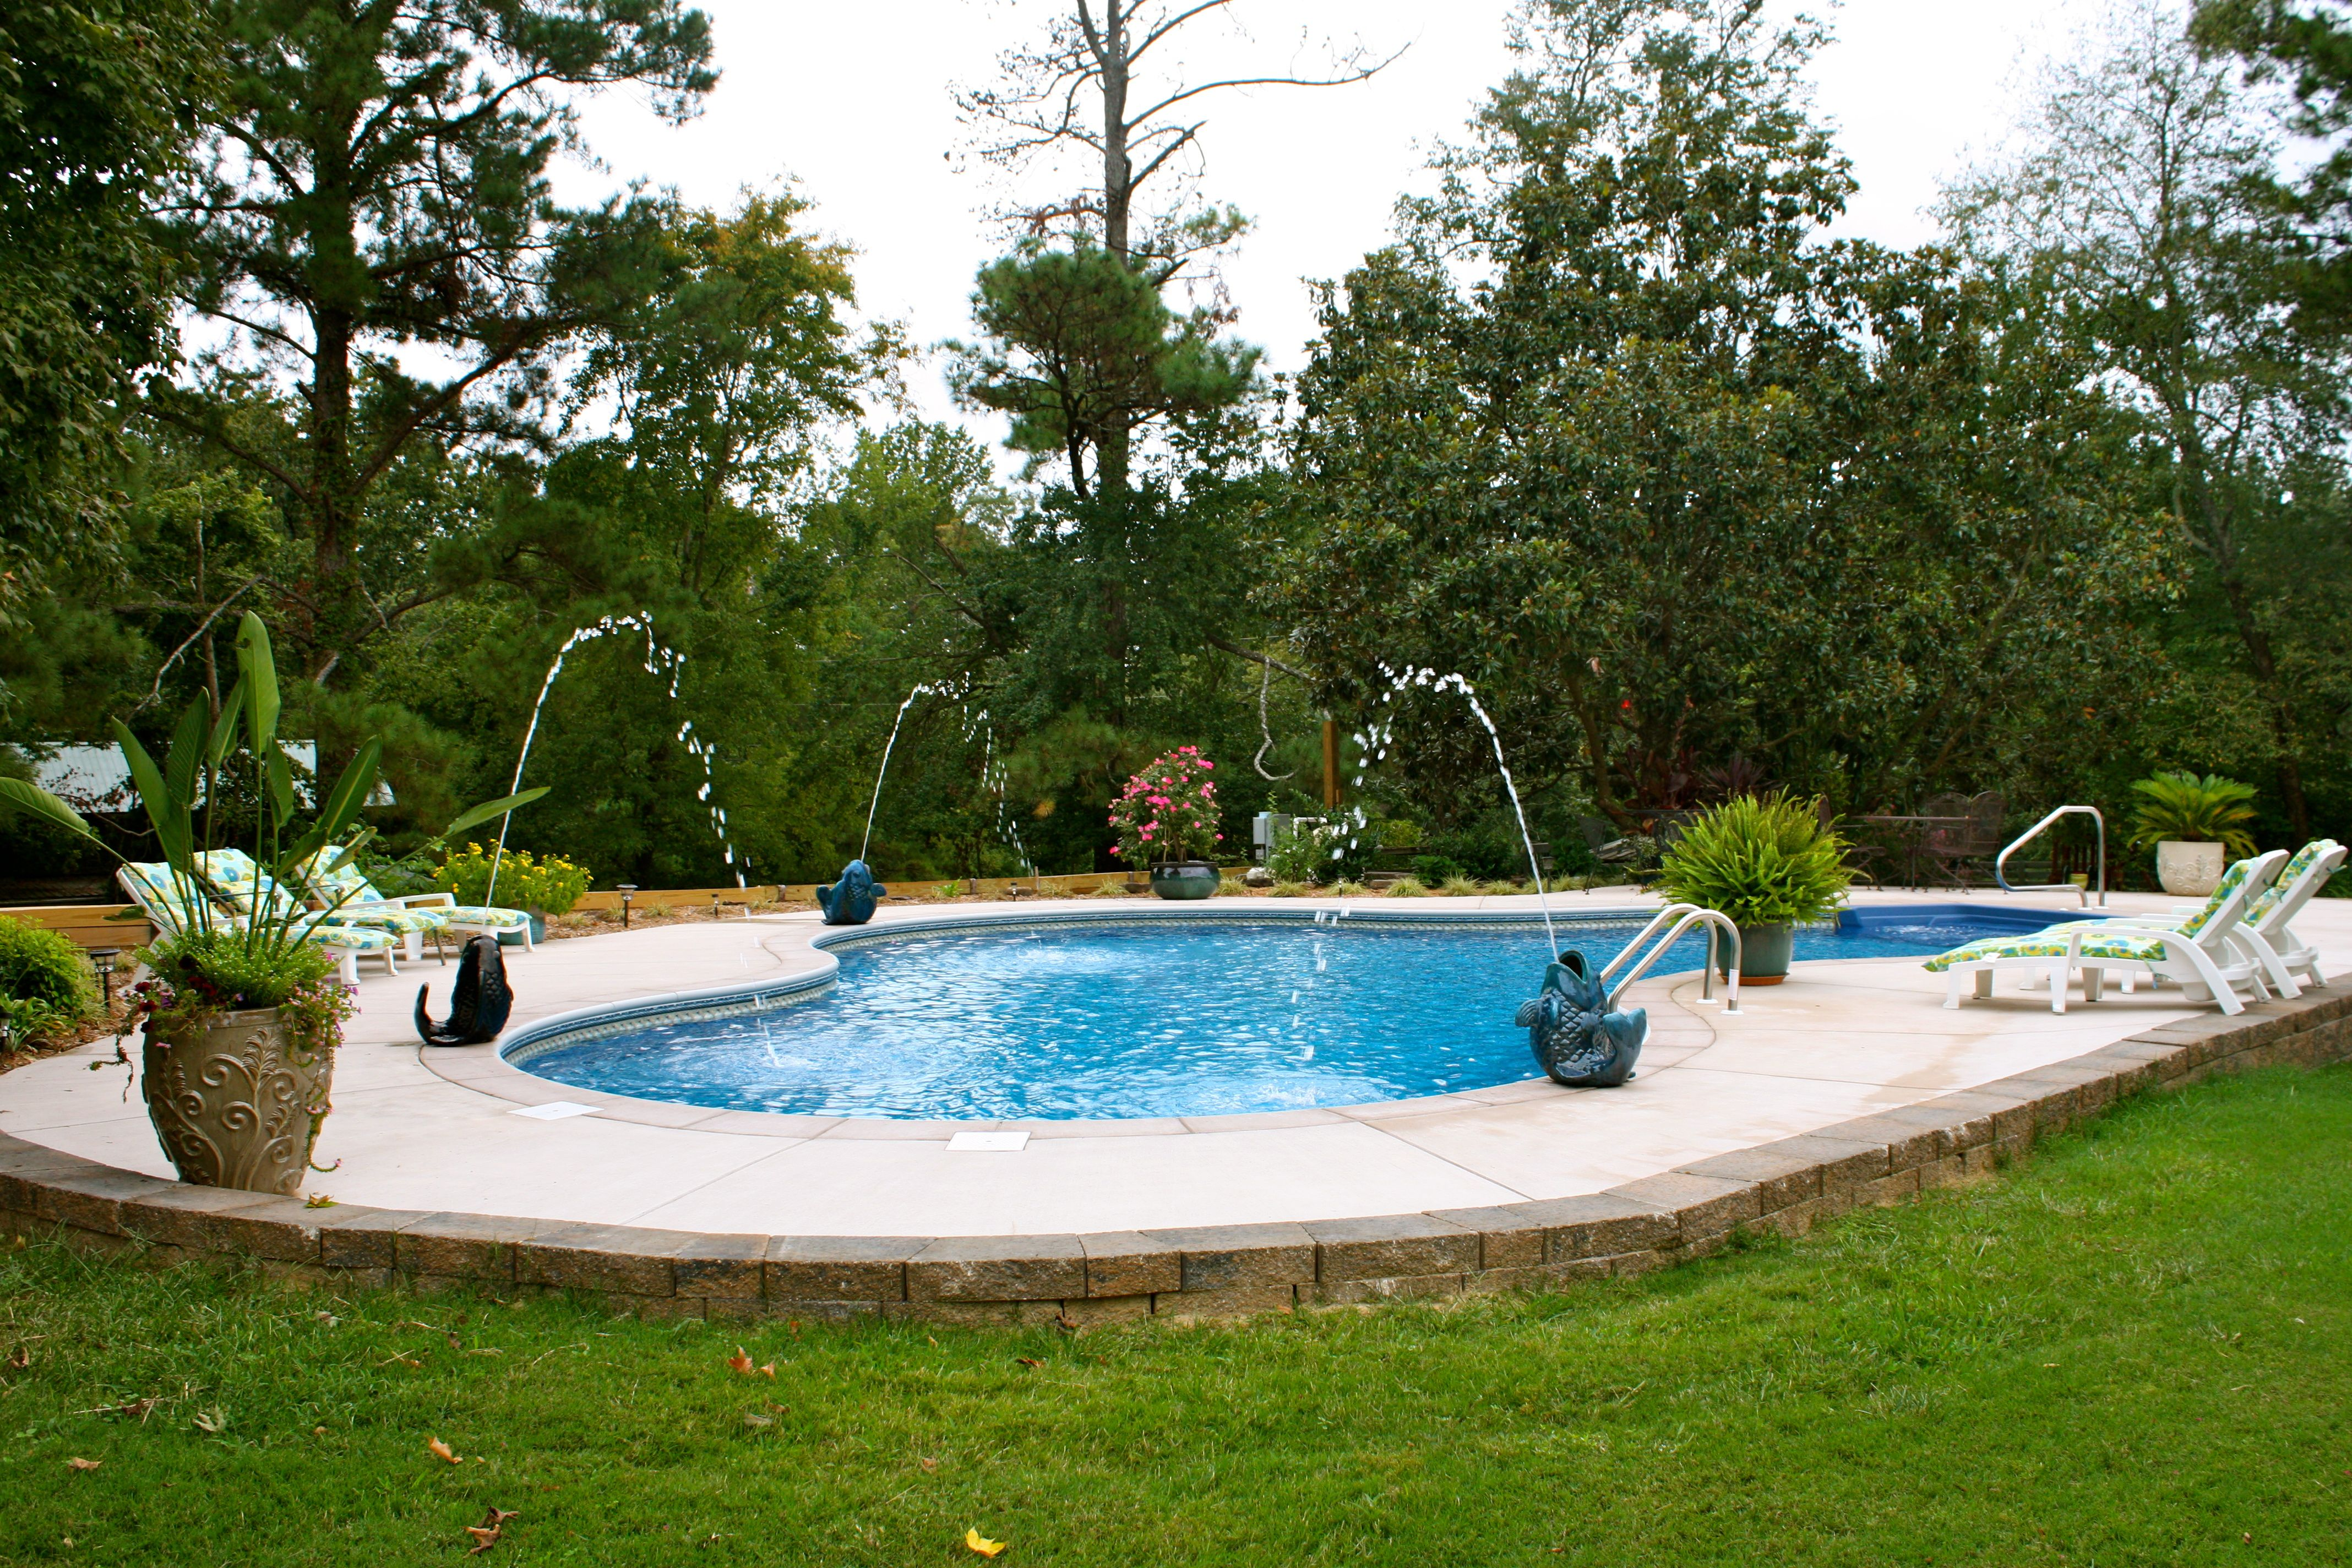 This Vinyl Liner Pool Is A Lagoon Shaped Pool With Fun Fish Shaped Water Features Wouldn 39 T You